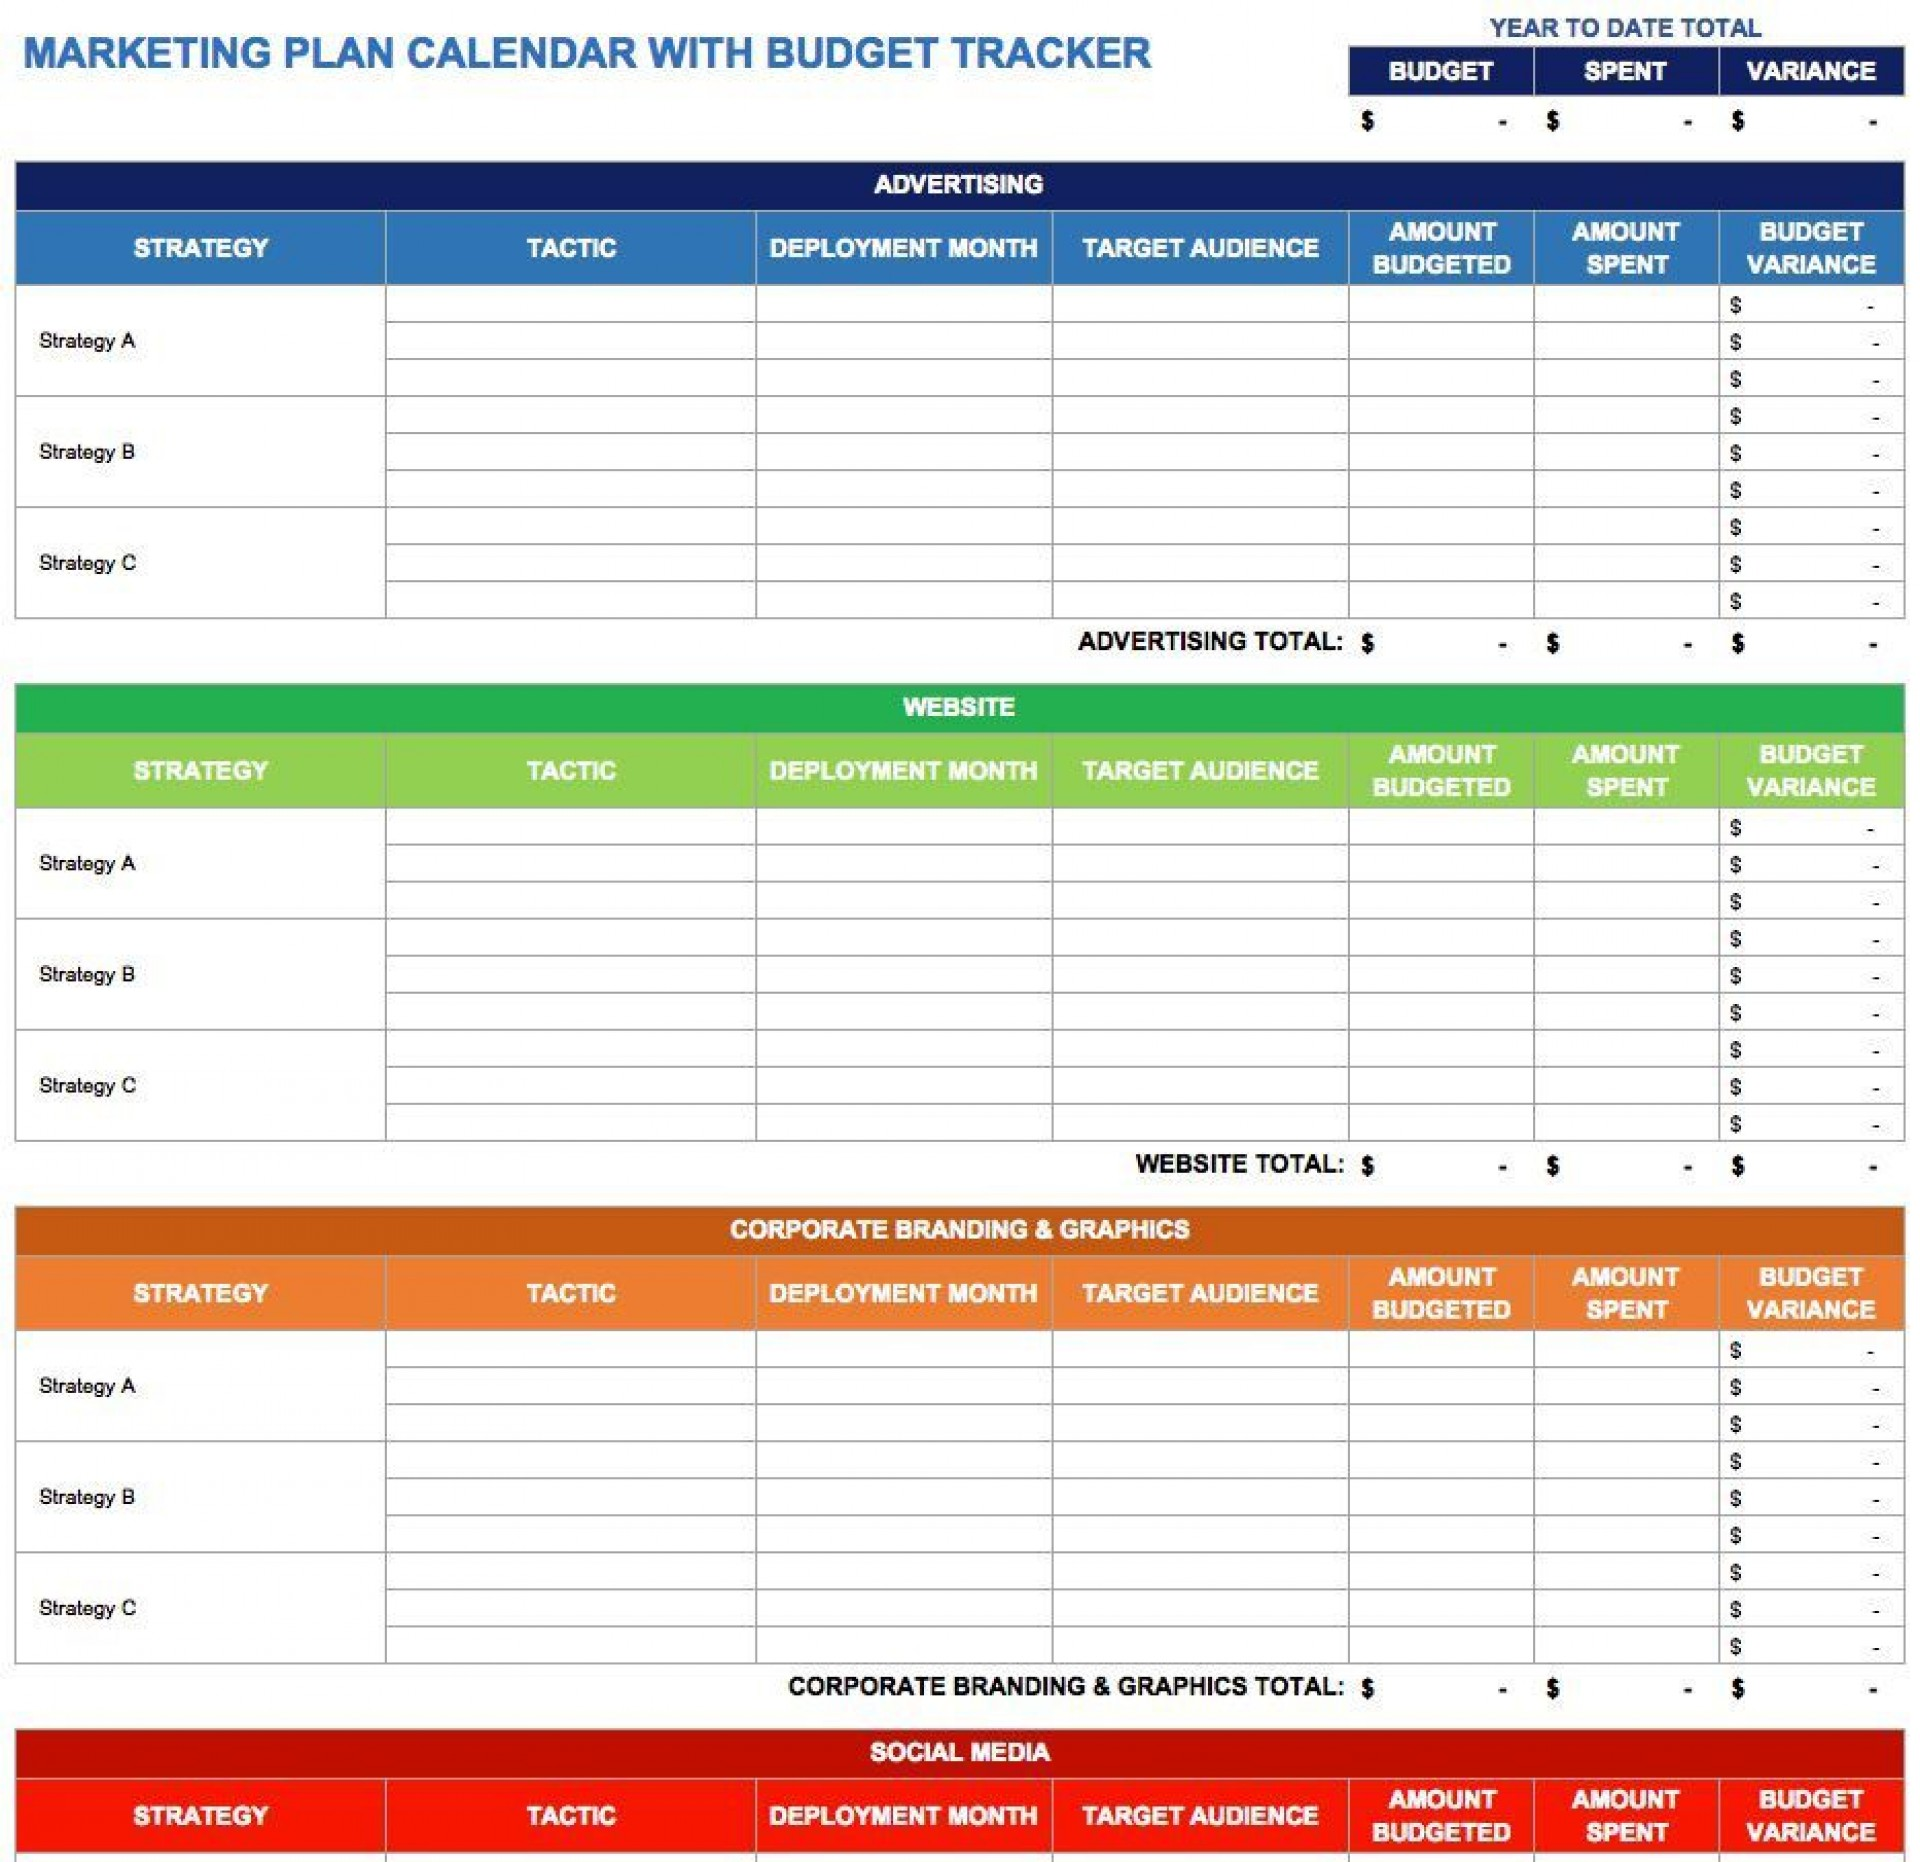 005 Fantastic Free Calendar Template Excel High Def  Monthly 2020 Perpetual 20191920